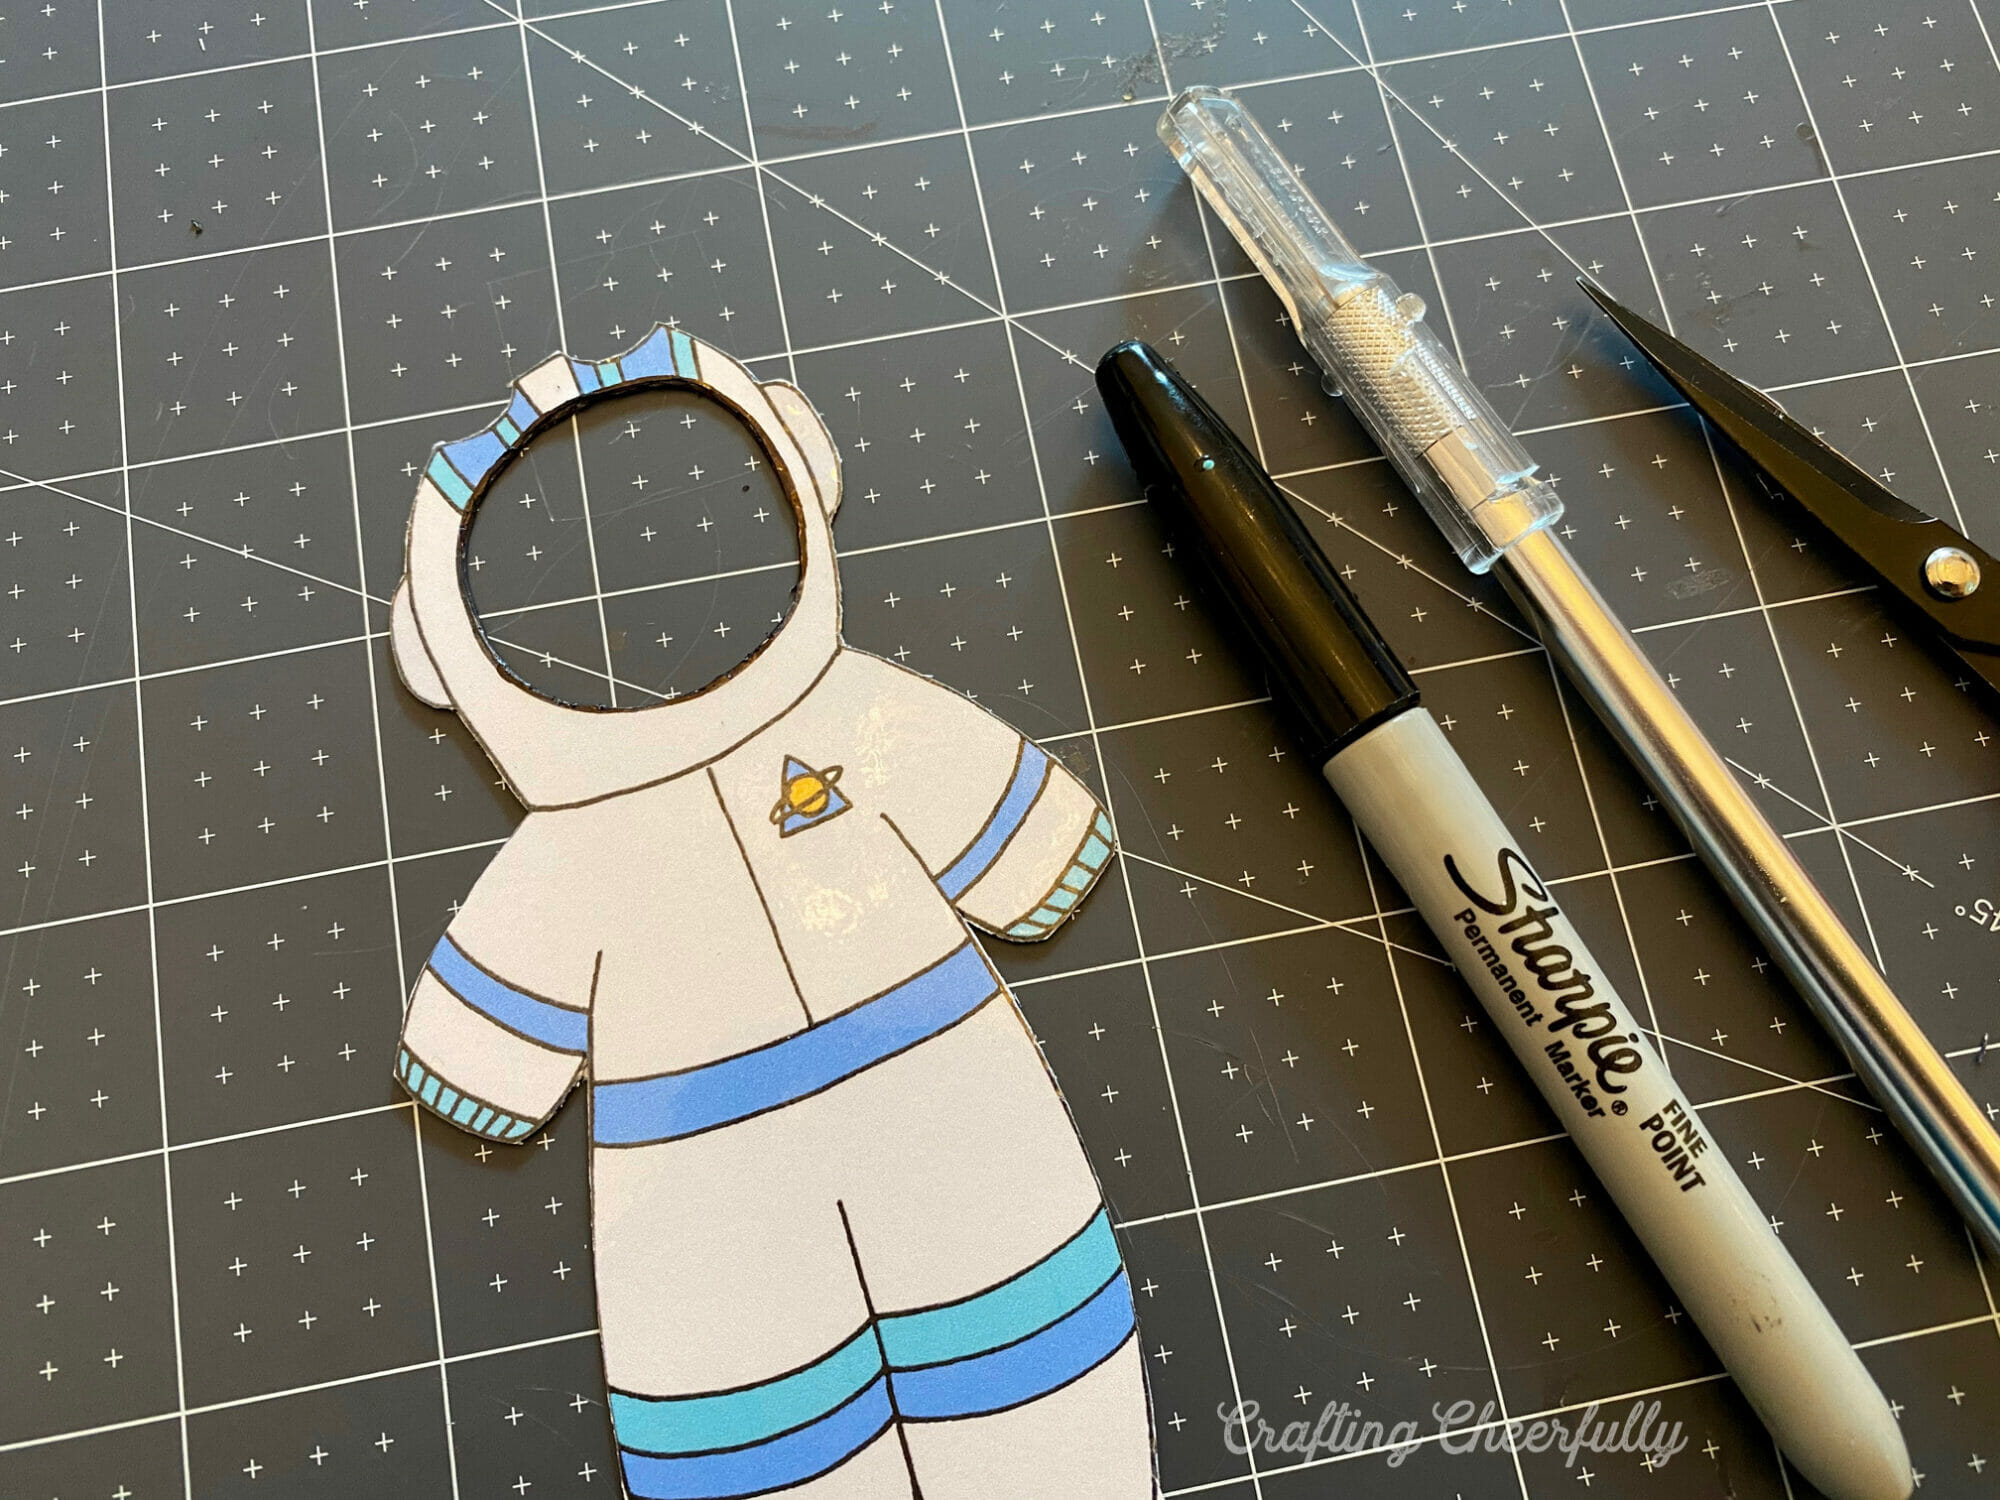 An paper astronaut costume is cut out carefully and lays on a black mat.